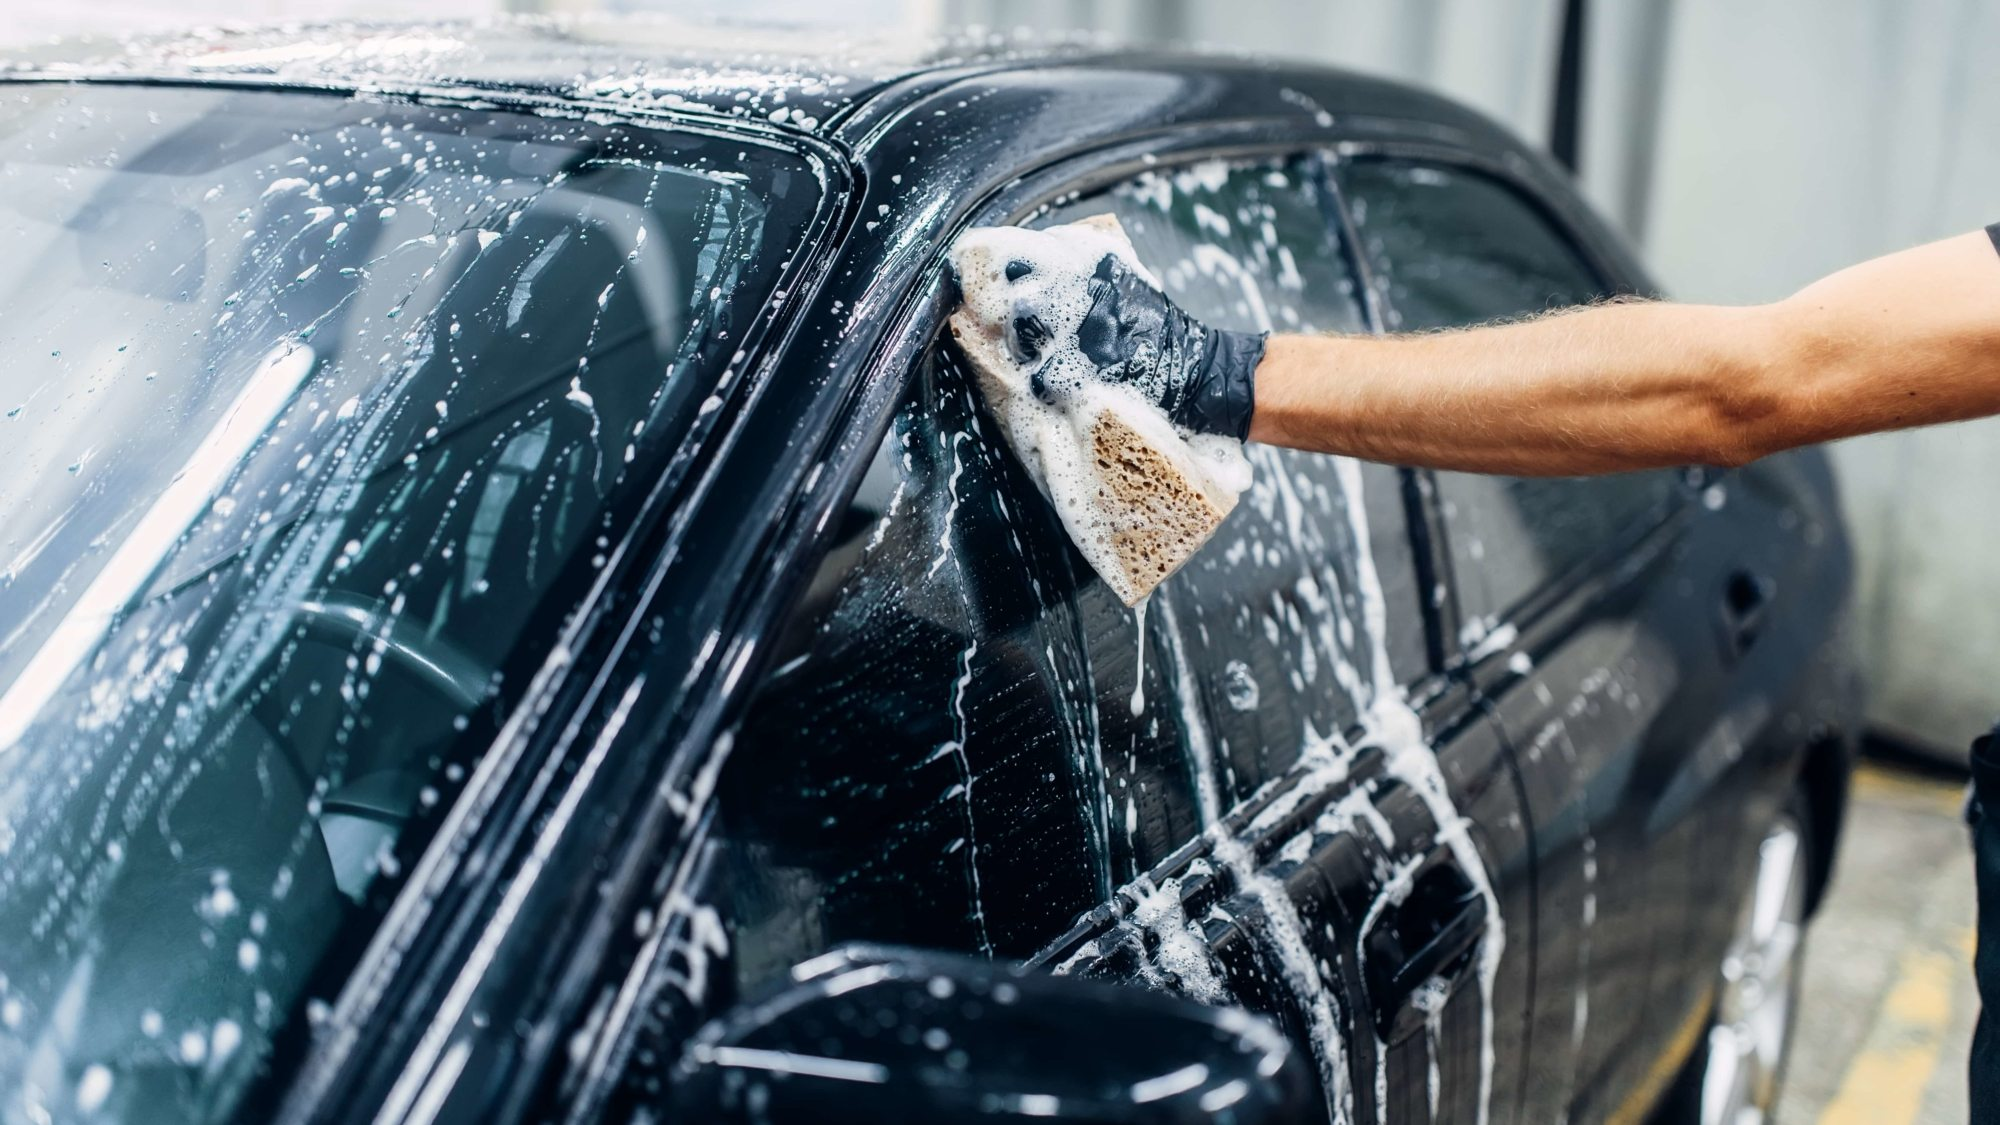 Carwash service, car cleaning, front view. Auto detailing, worker soaps glasses